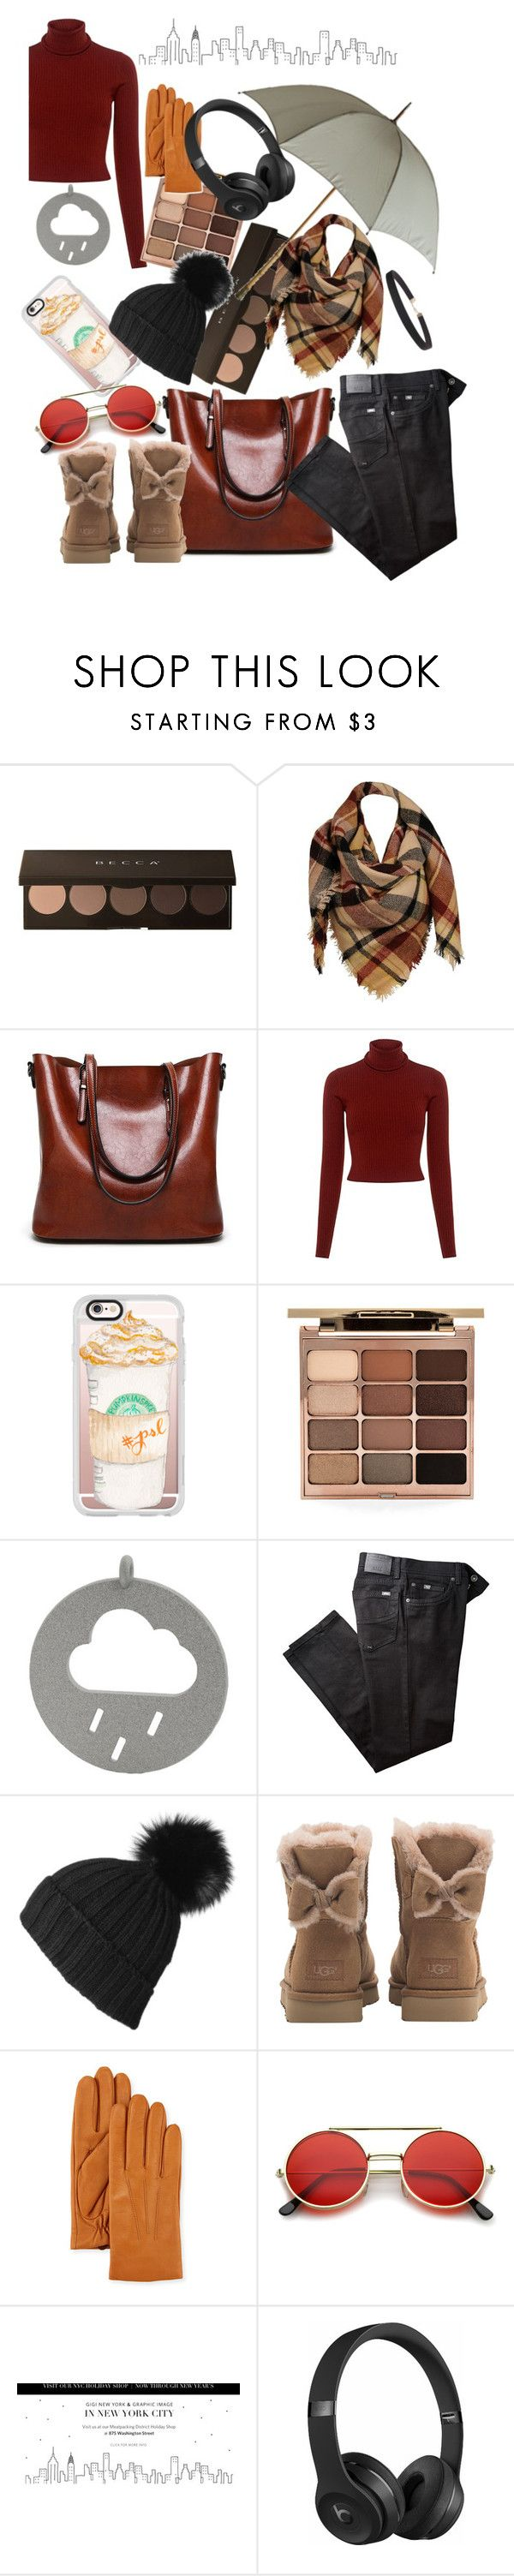 """Untitled #109"" by grace-m-polyvor ❤ liked on Polyvore featuring Sylvia Alexander, A.L.C., Casetify, Stila, BRAX, Black, UGG, Neiman Marcus, GiGi New York and Beats by Dr. Dre"